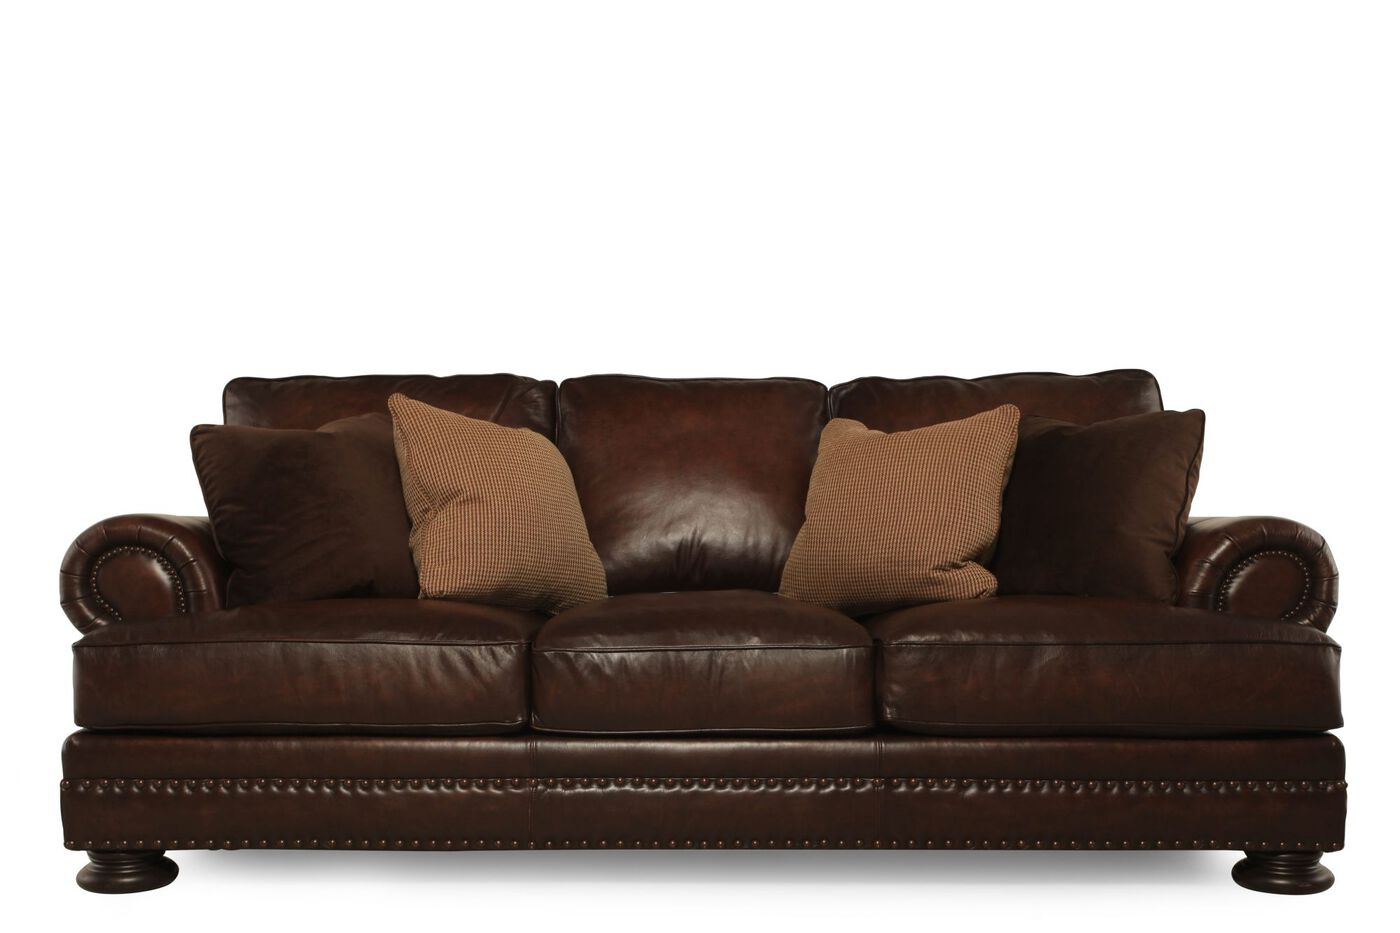 Bernhardt foster leather sofa mathis brothers furniture for Furniture leather sofa